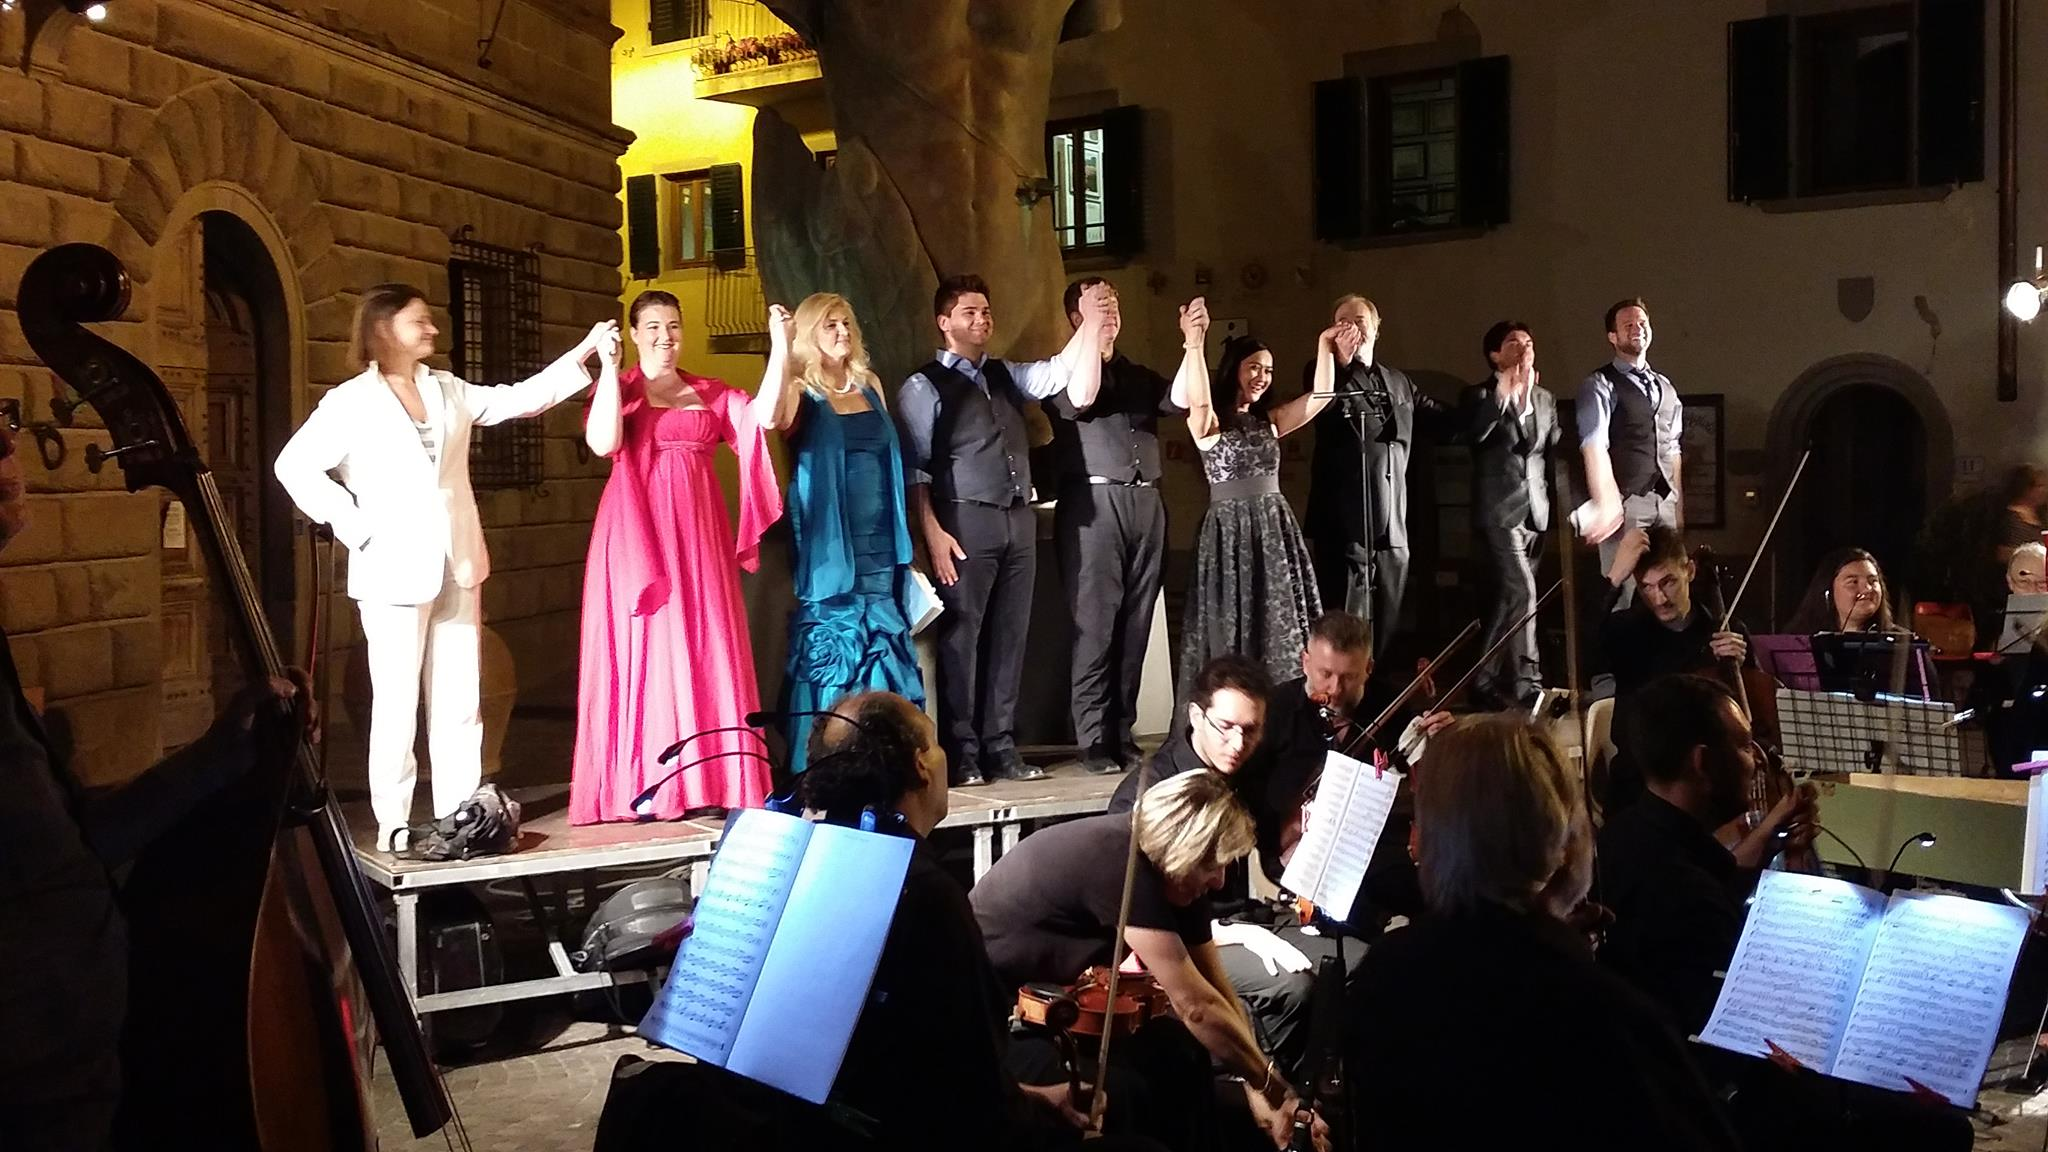 June 13 – July 9, 2016: Greve Opera Academy and Chamber Music Festival